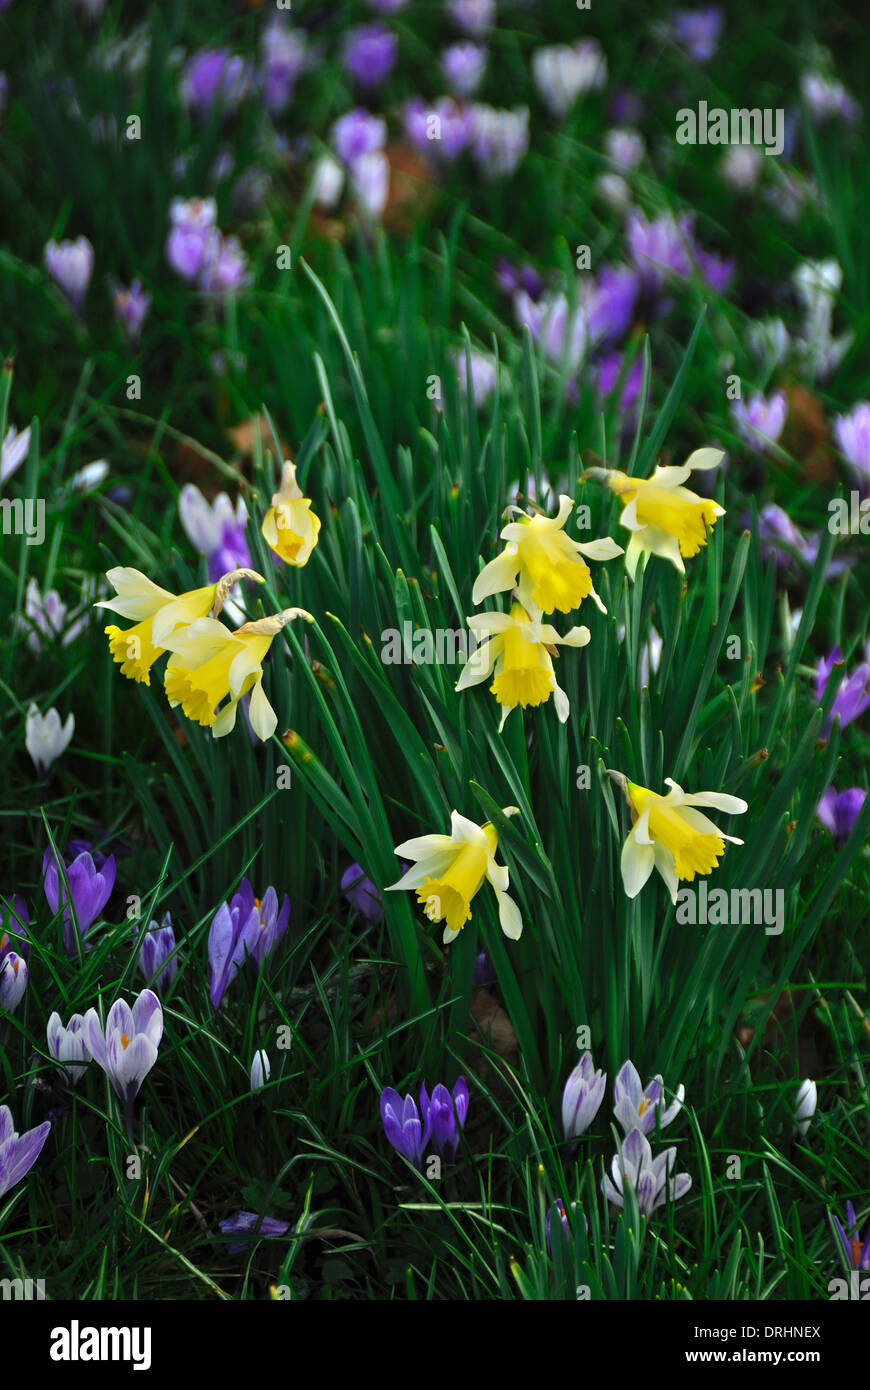 A Sea Of Early Spring Flowers Crocus And Daffodils Uk Stock Photo